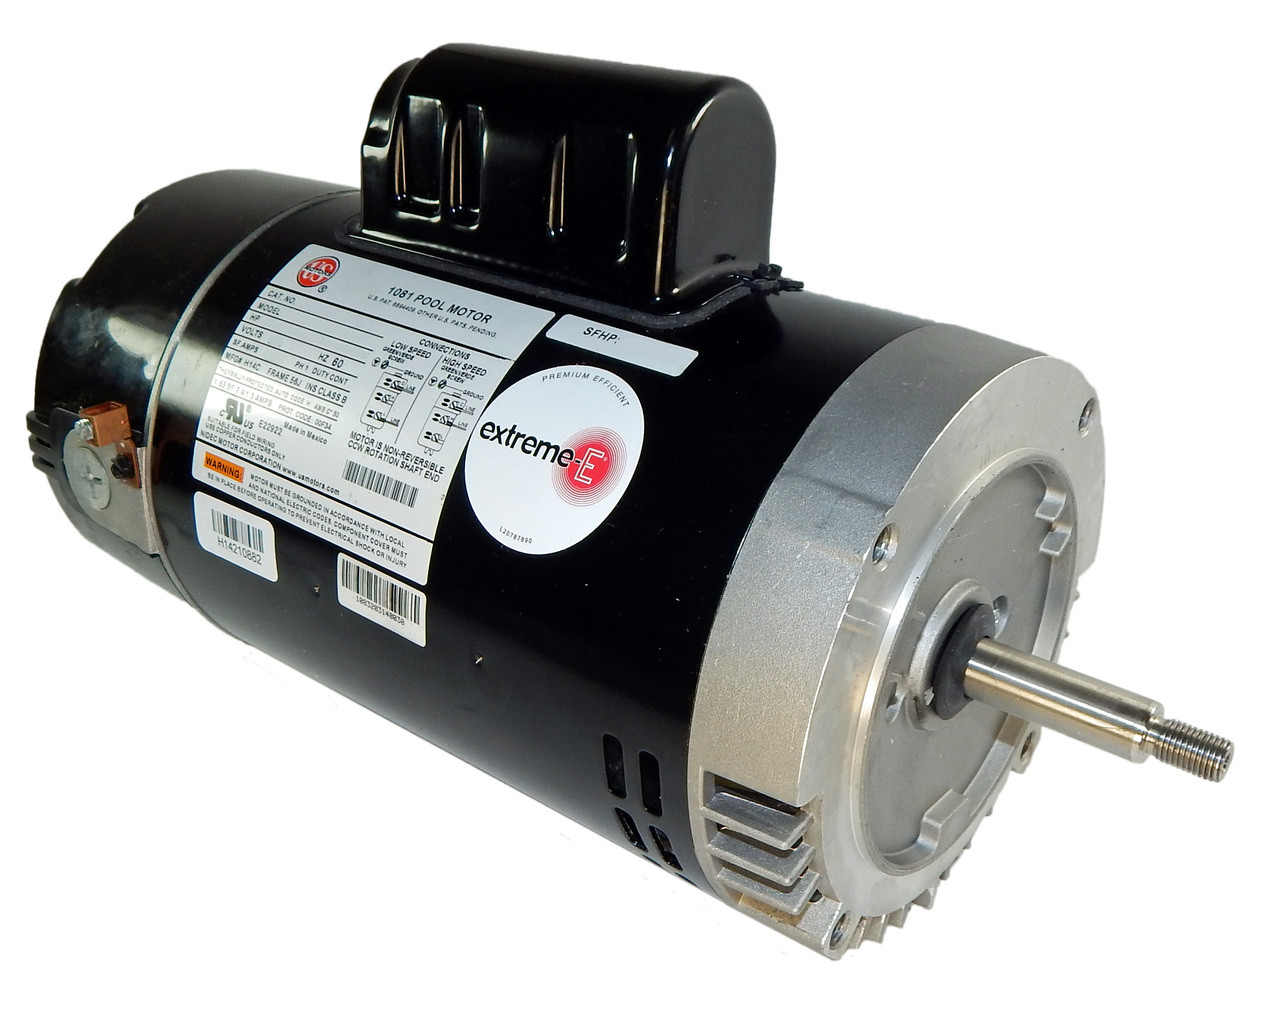 hight resolution of 1 5 hp 2 speed 56j frame 230v 2 speed swimming pool motor us electric motor asb2977